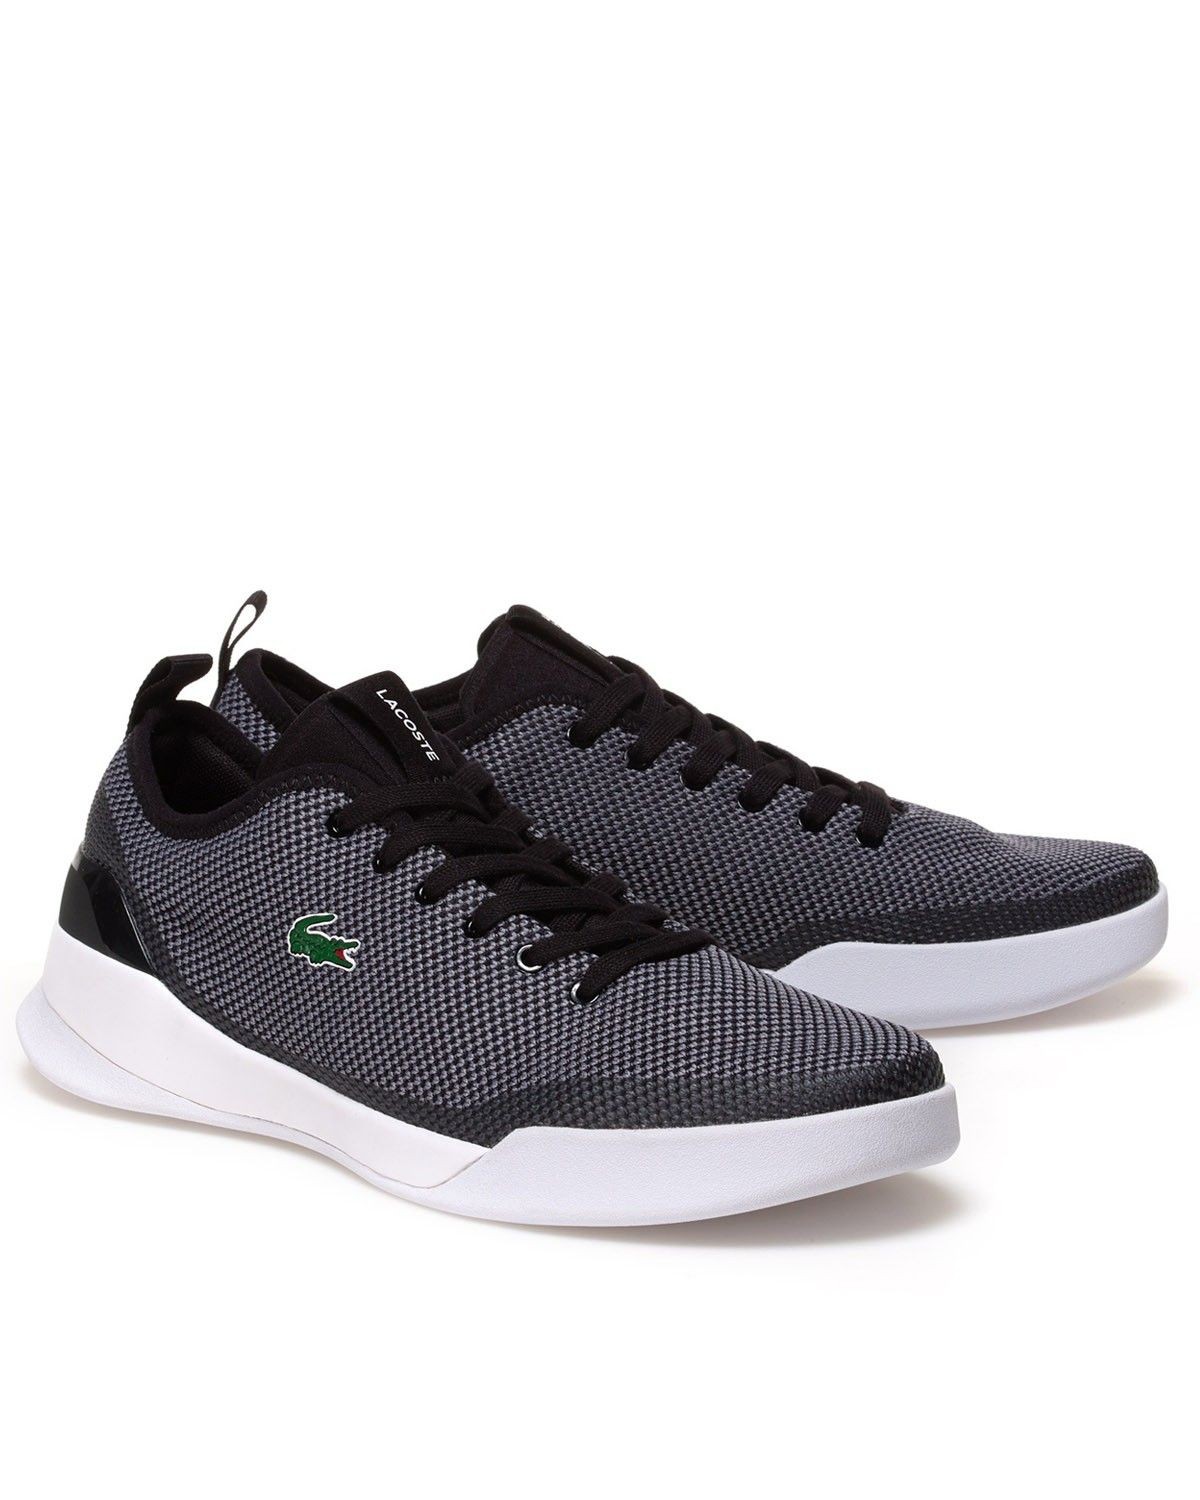 LACOSTE SHOES Lacoste Black & White & Grey Shoes - Dual